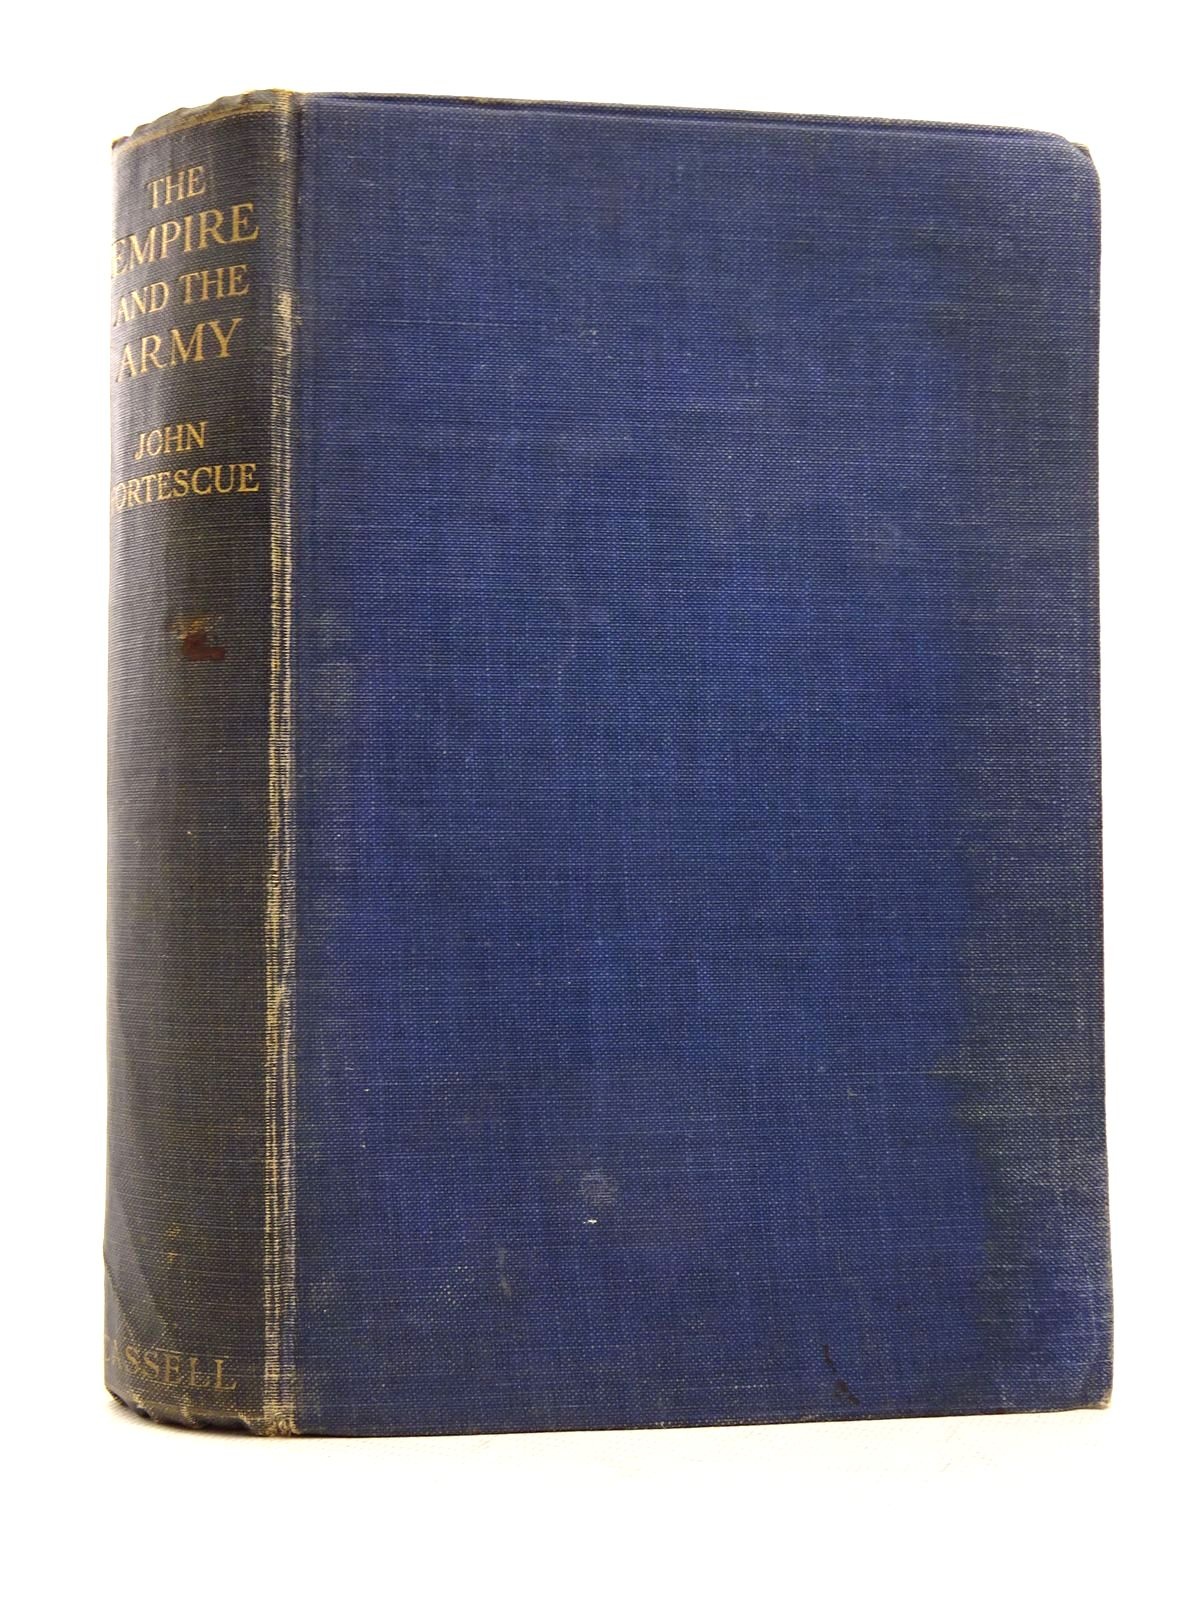 Photo of THE EMPIRE AND THE ARMY written by Fortescue, John published by Cassell & Company Ltd (STOCK CODE: 1817192)  for sale by Stella & Rose's Books